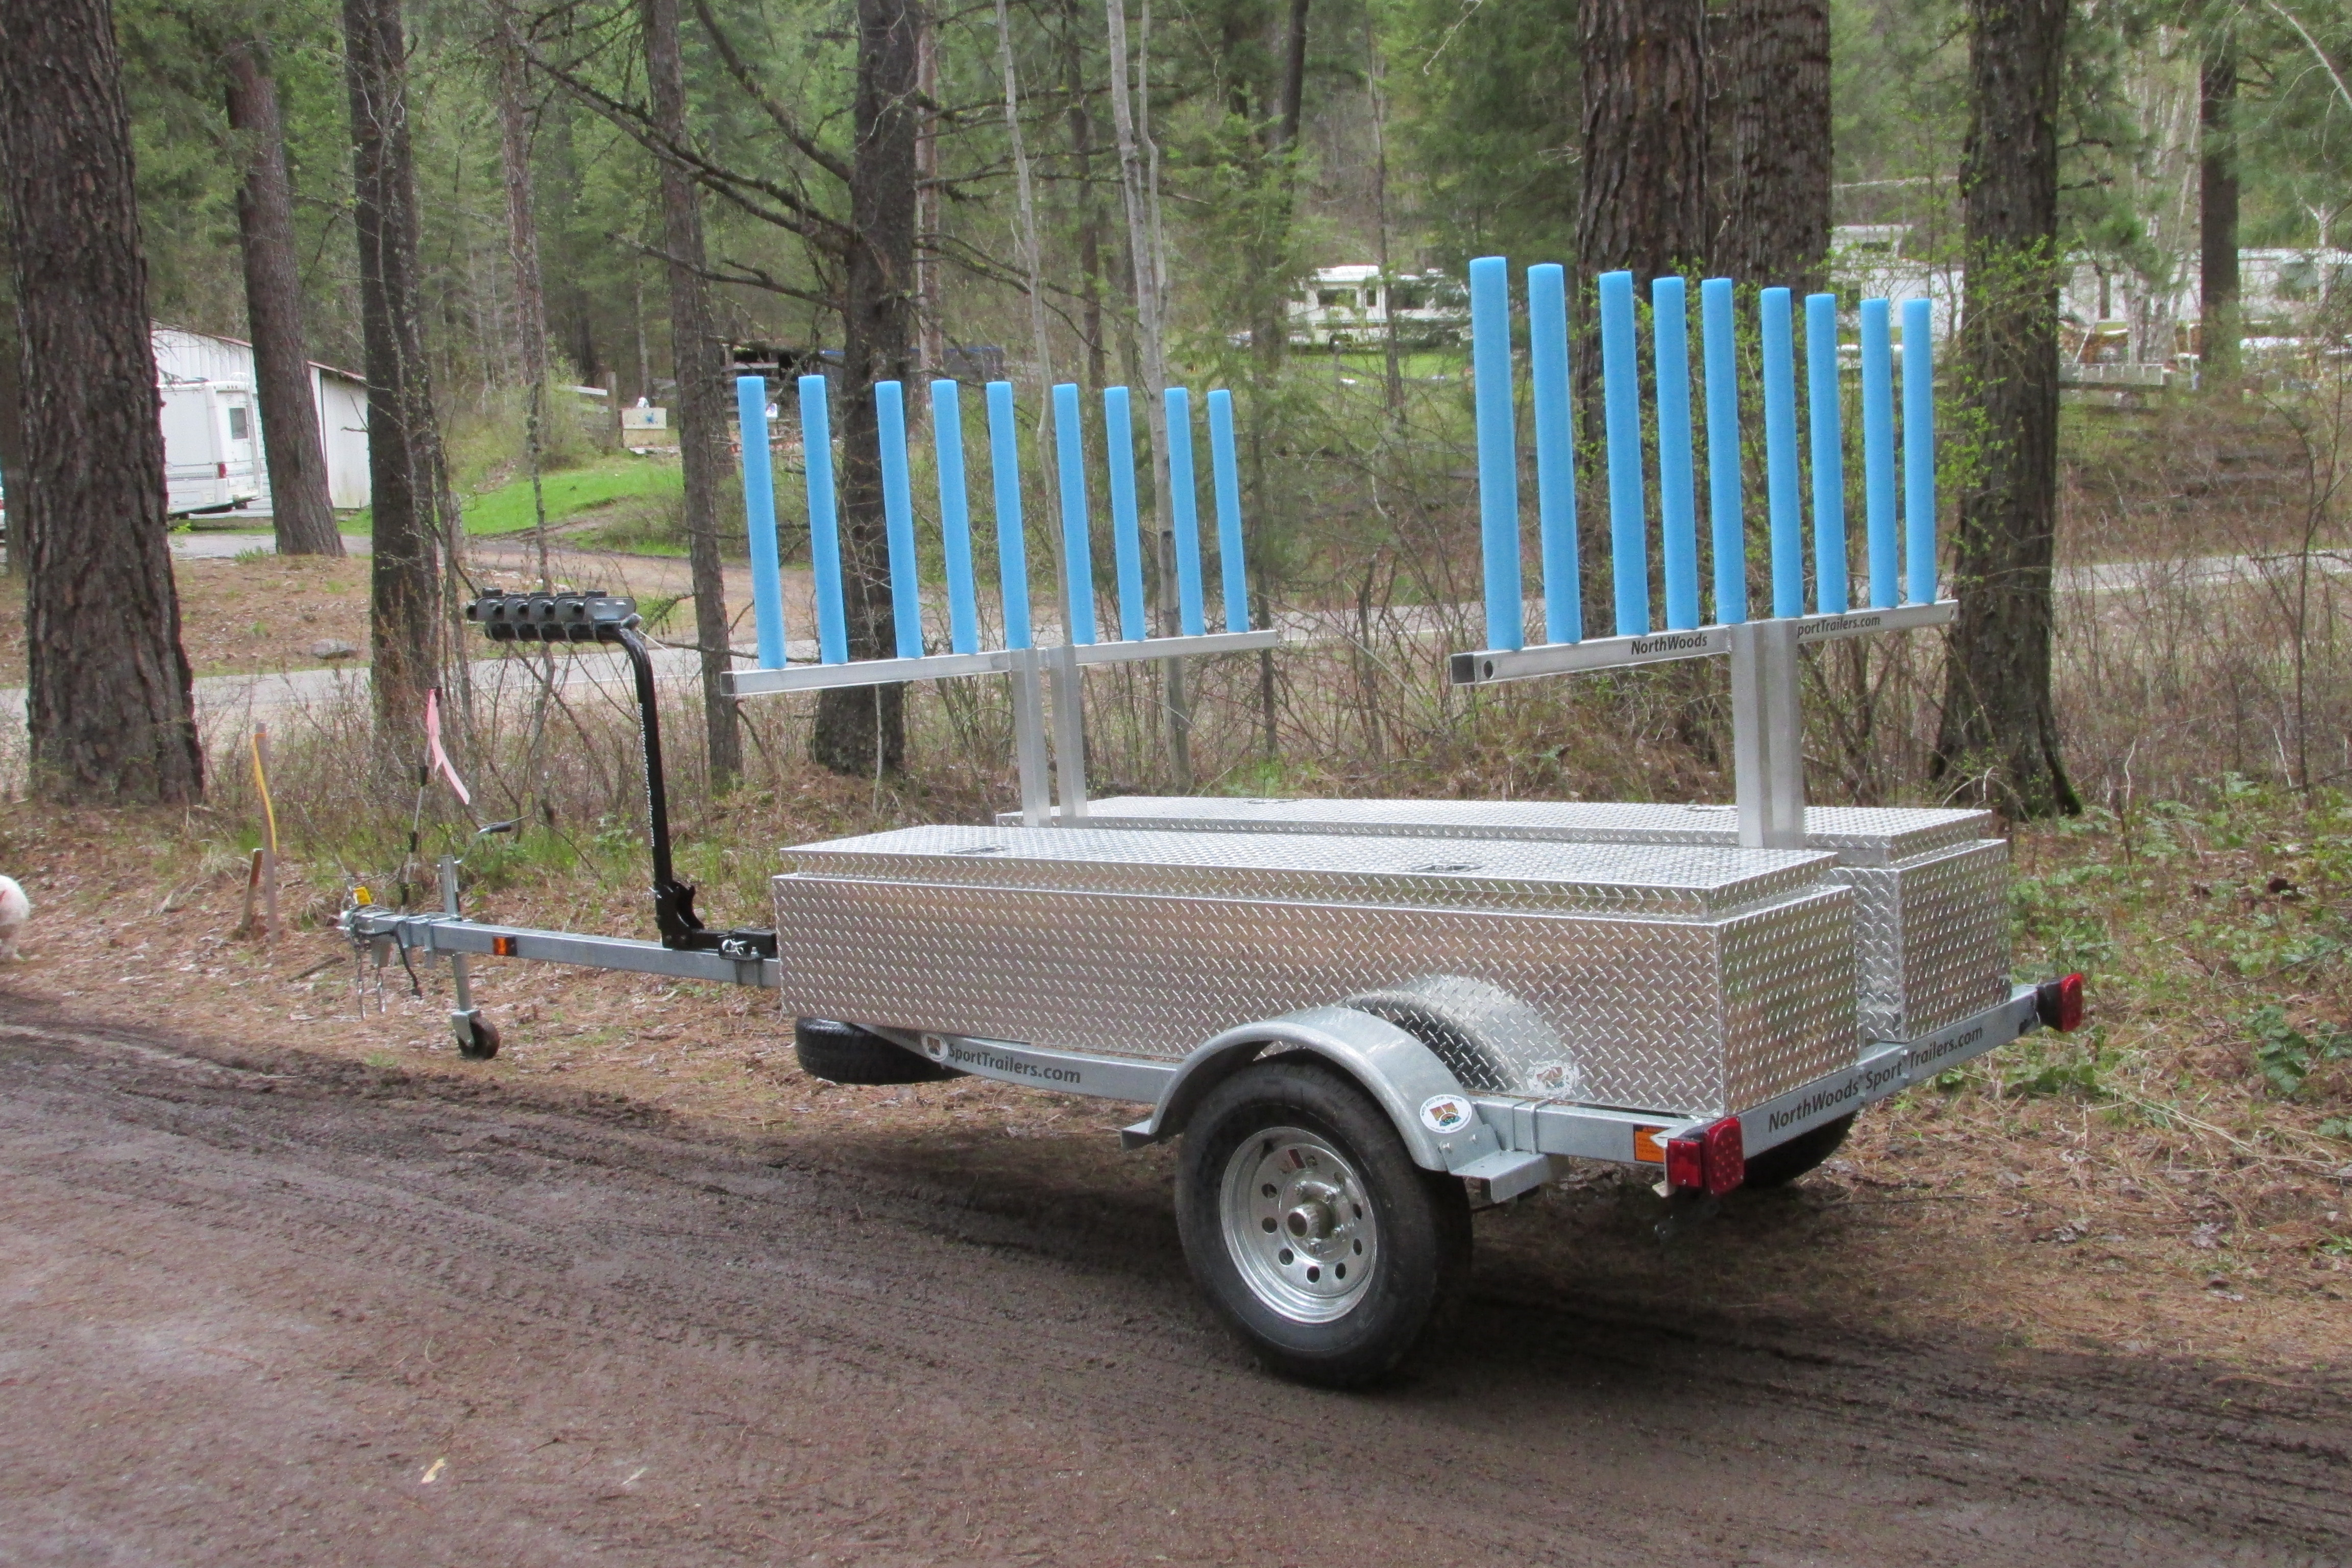 Transport, Storage & Launching: Multi Trailer Kayak, Canoe, SUP, Sailboat, Bikes, Storage by North Woods Sport Trailers - Image 4027